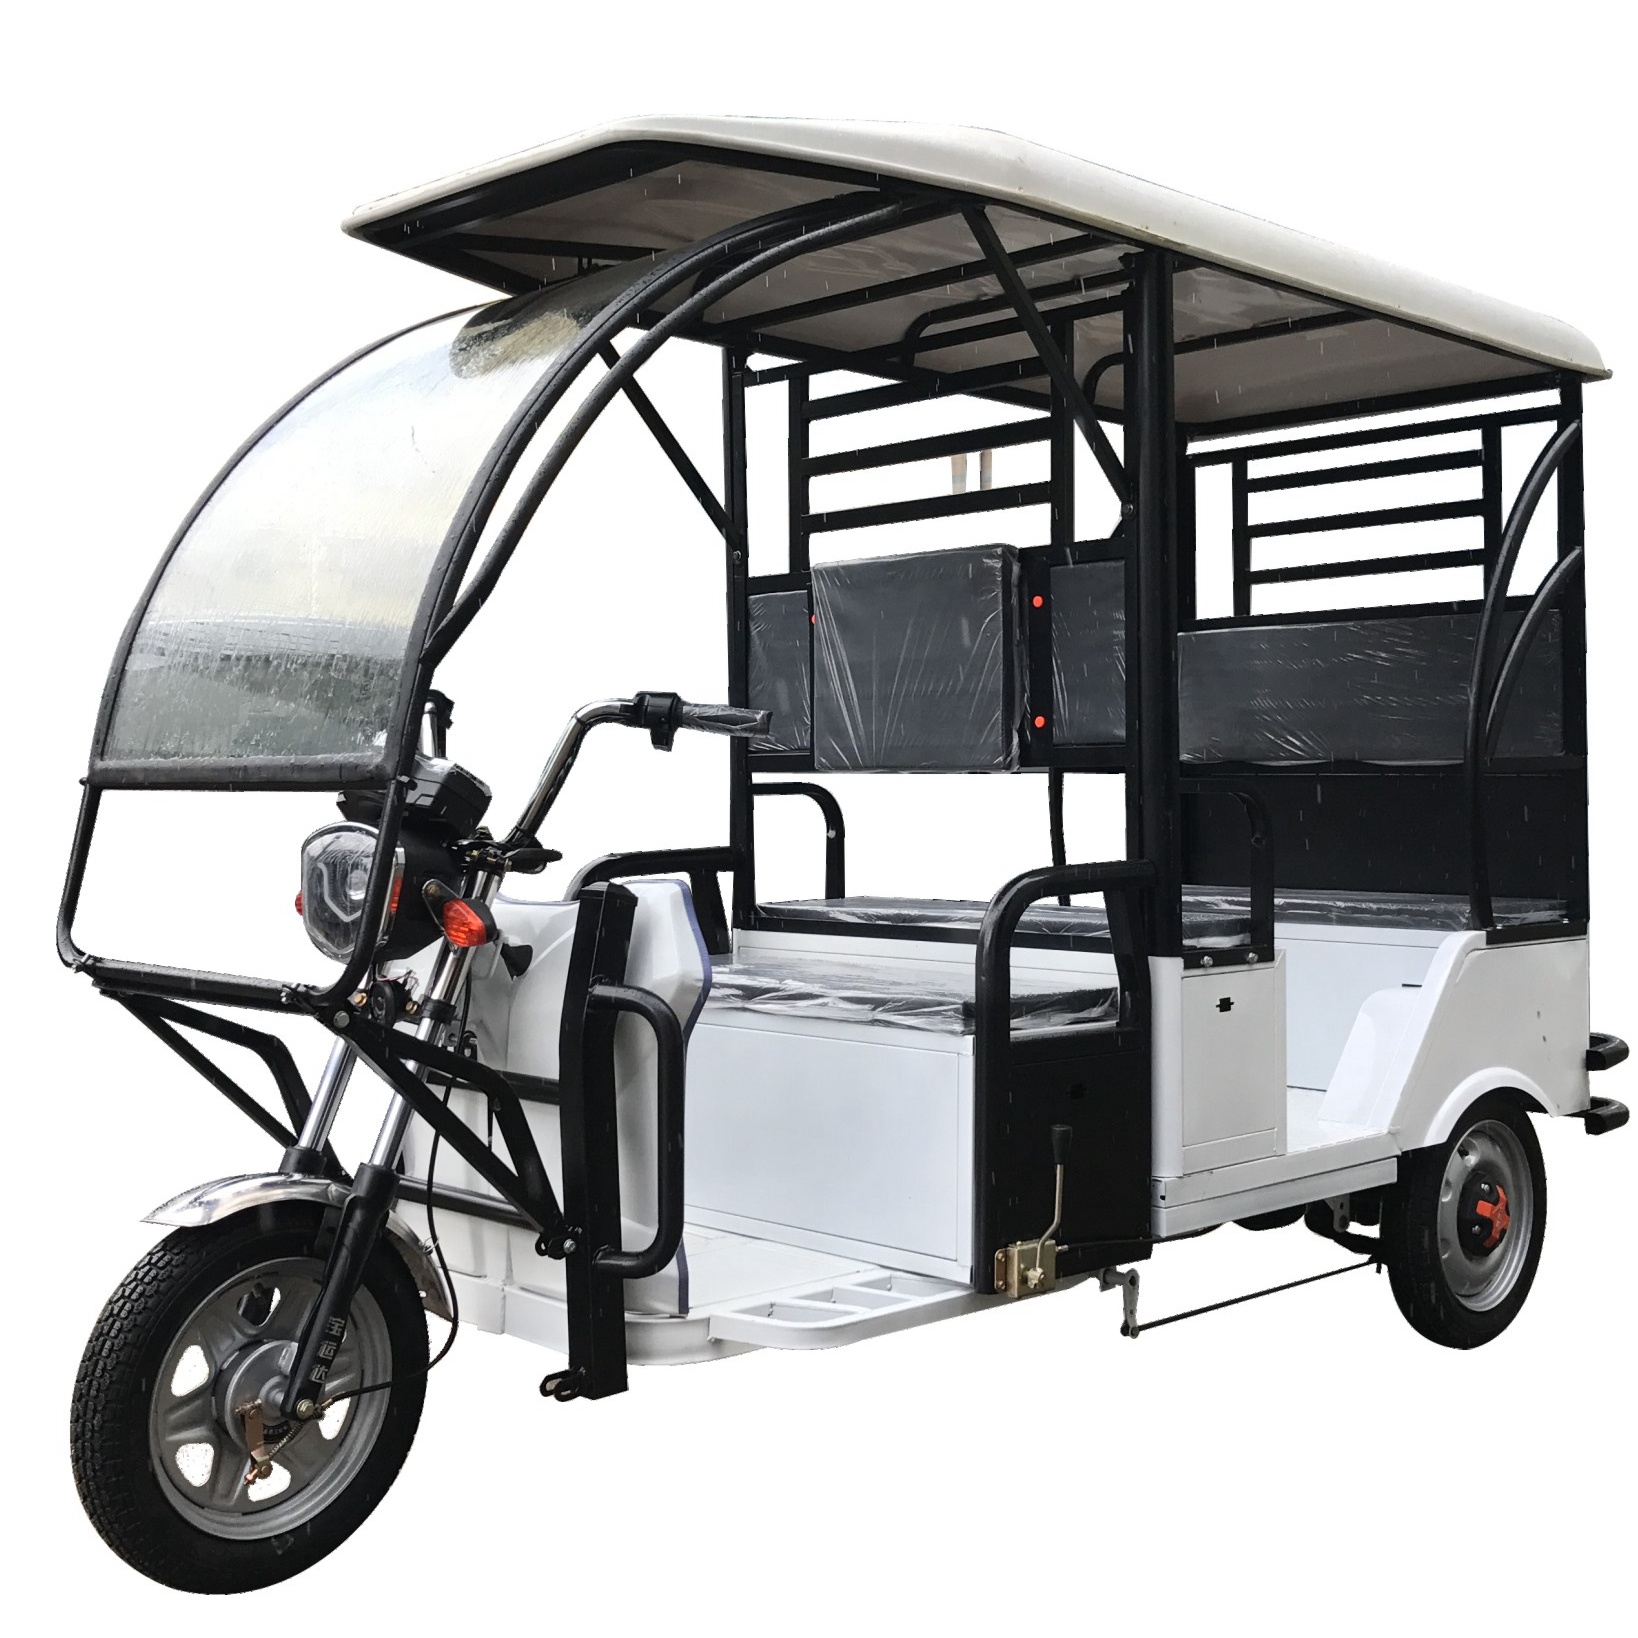 48V500W tricycle electric vehicle for the passenger